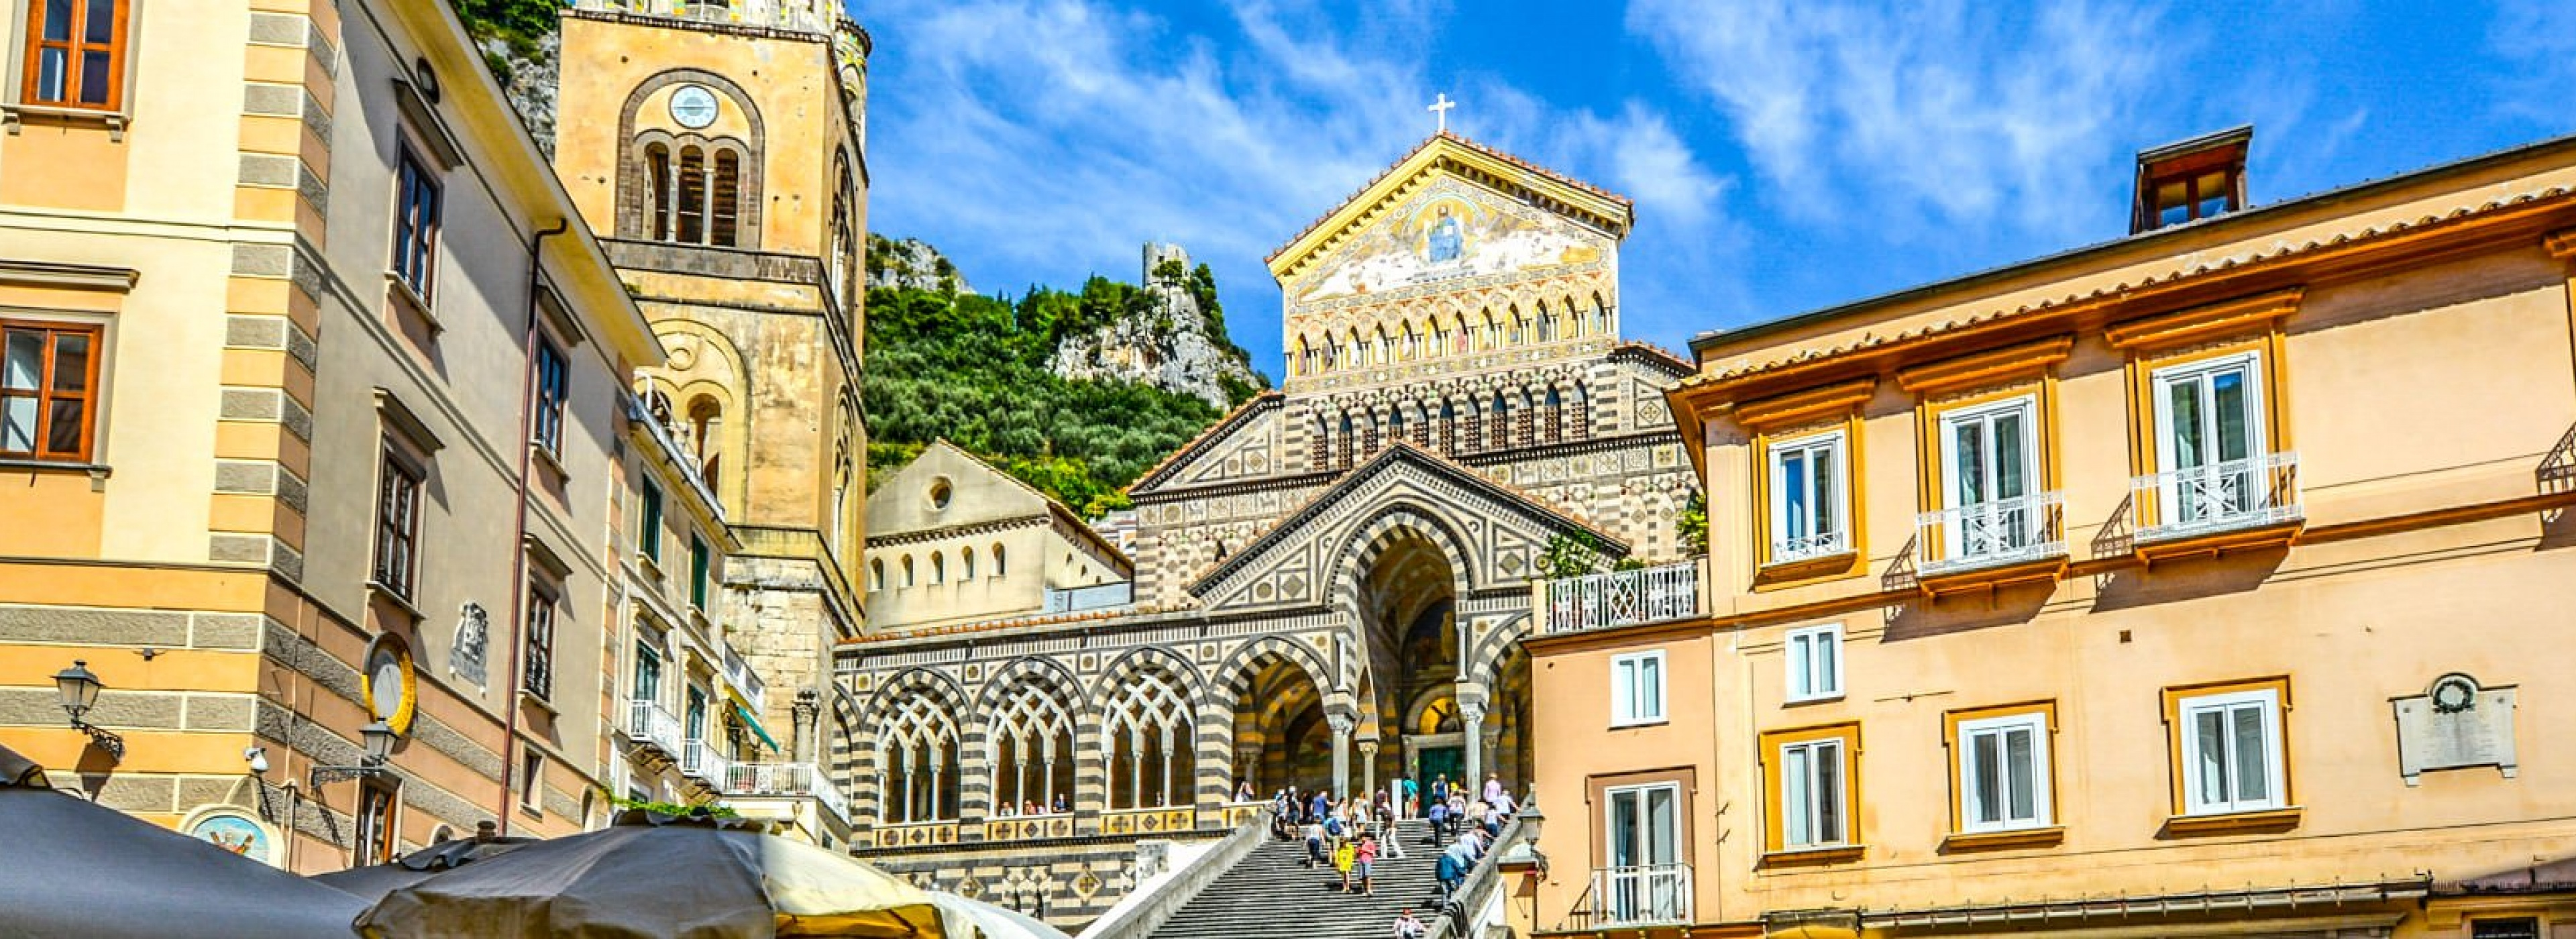 Amalfi City